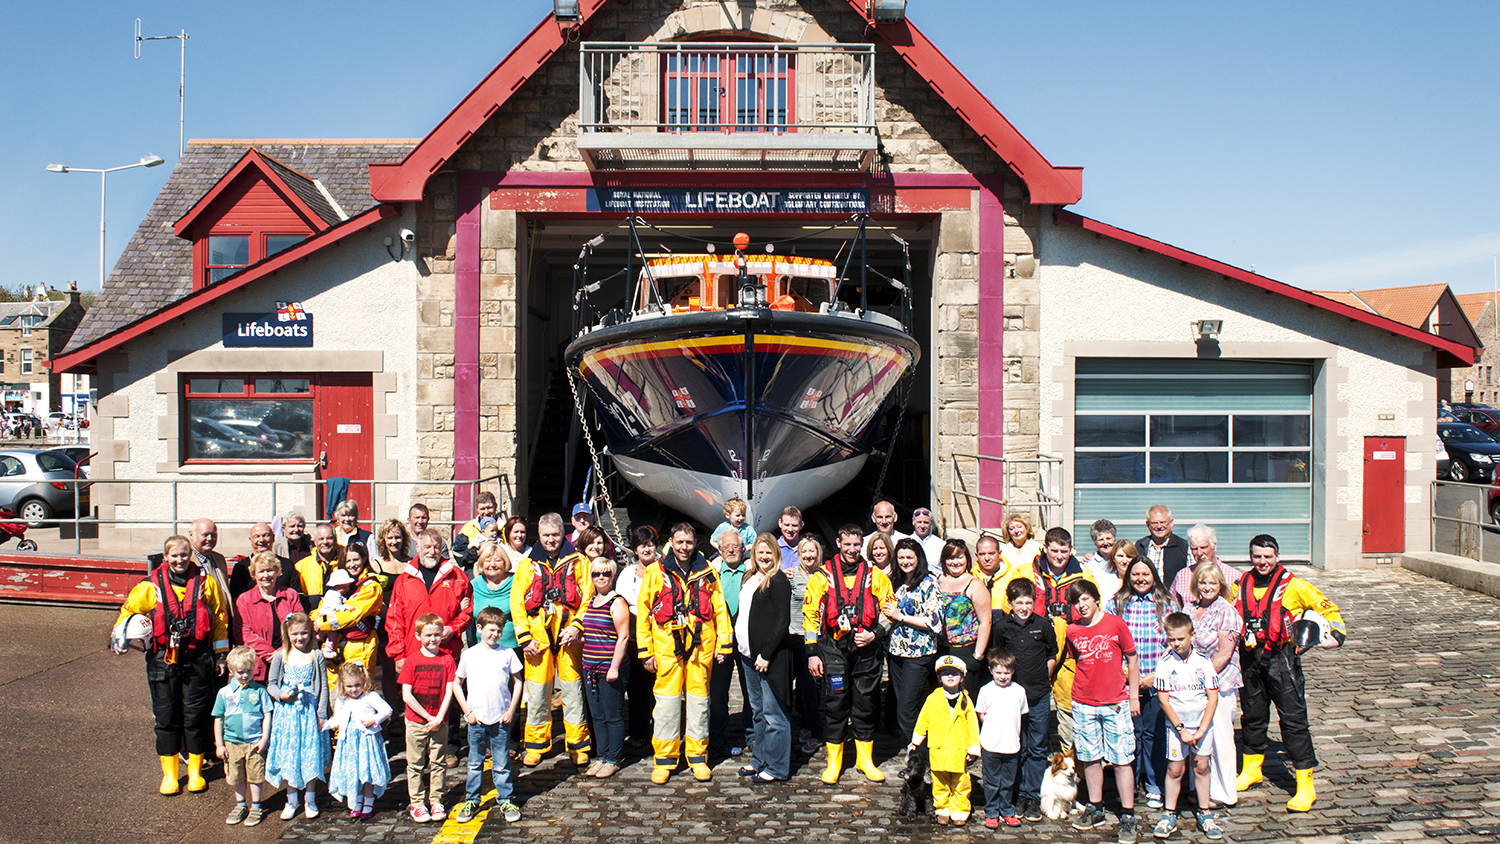 A group shot of Anstruther lifeboat volunteers with their supporting families and community